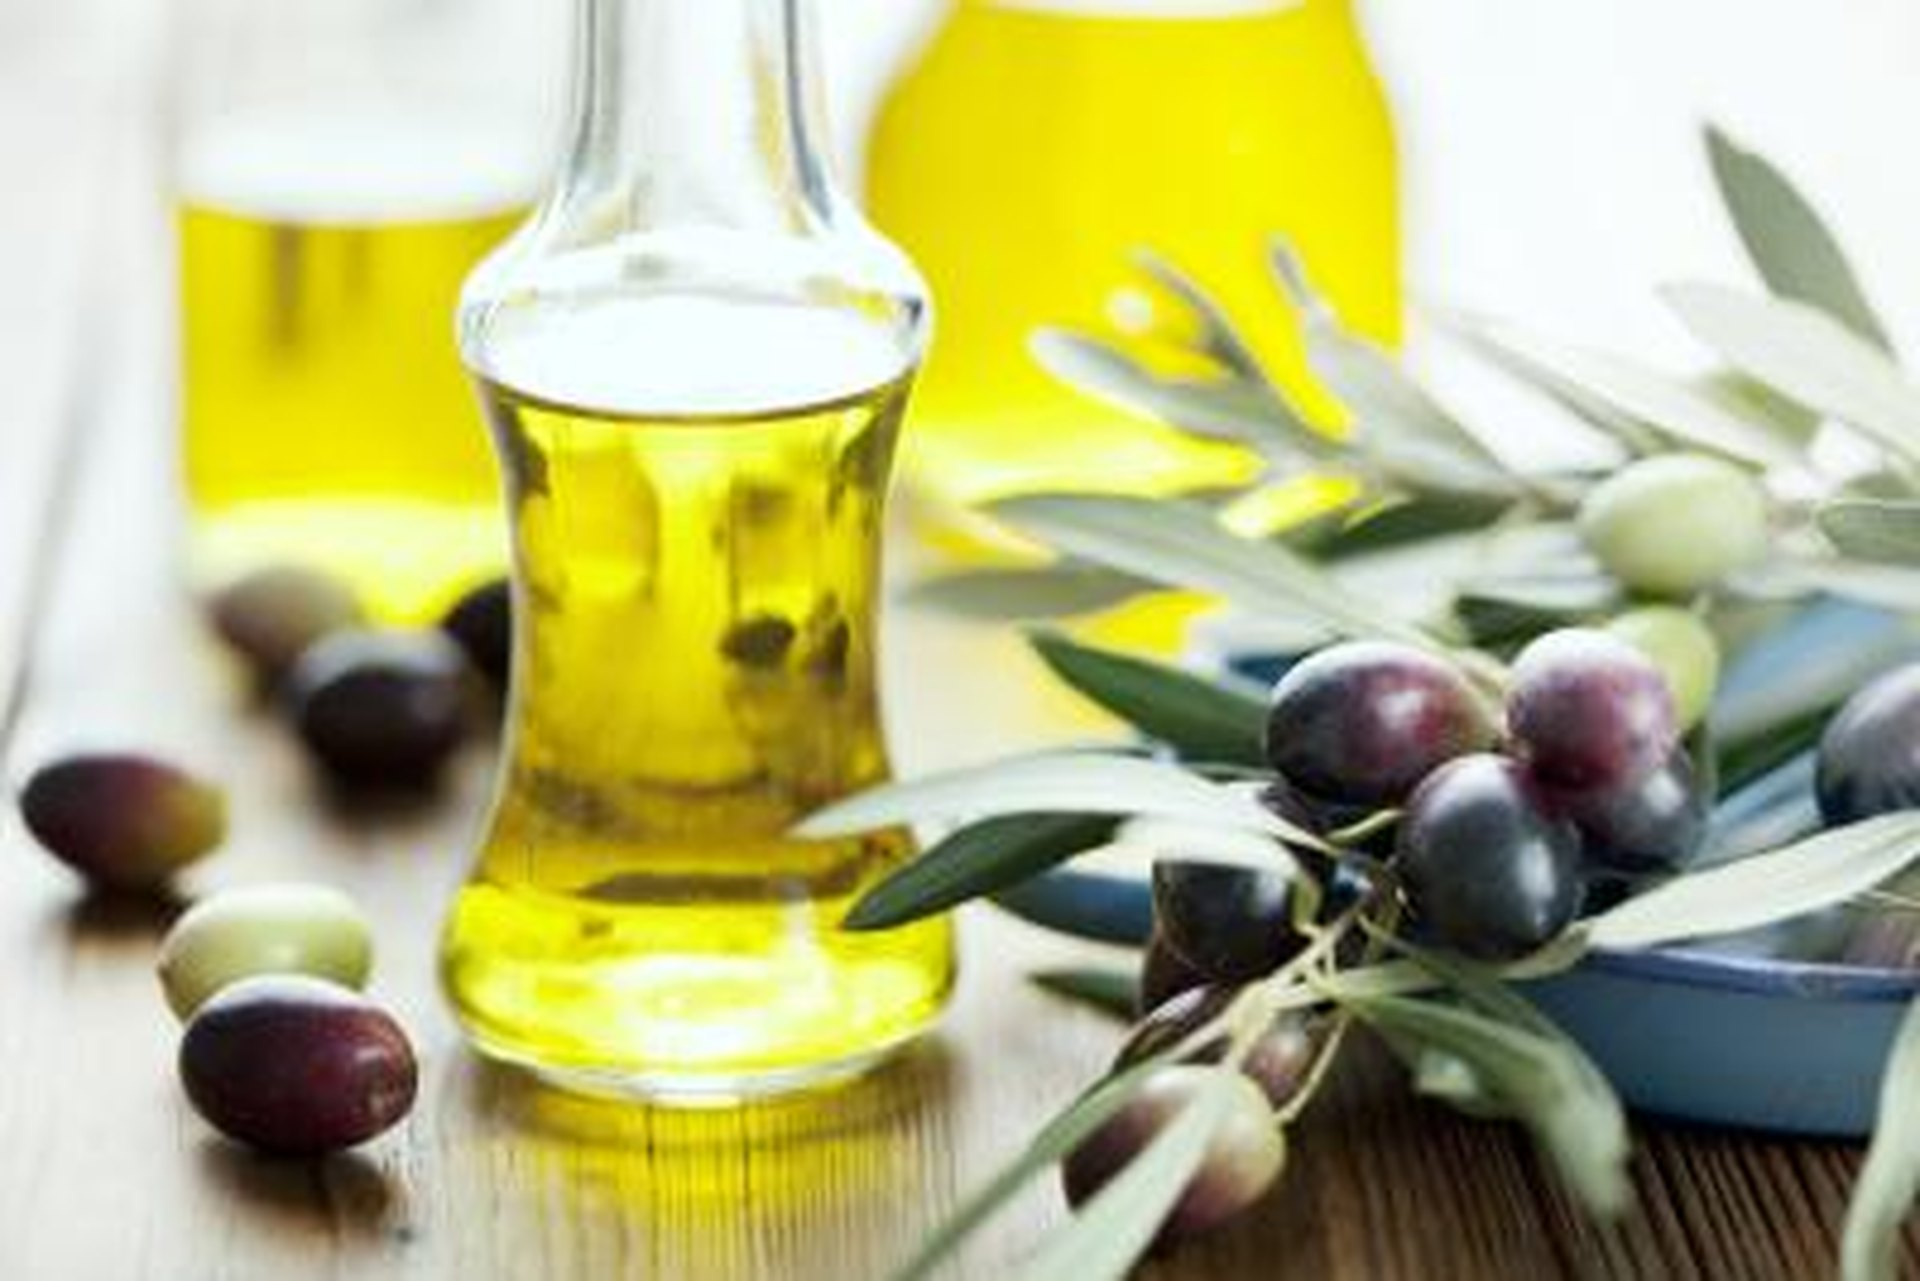 Why drink olive oil on an empty stomach? 34